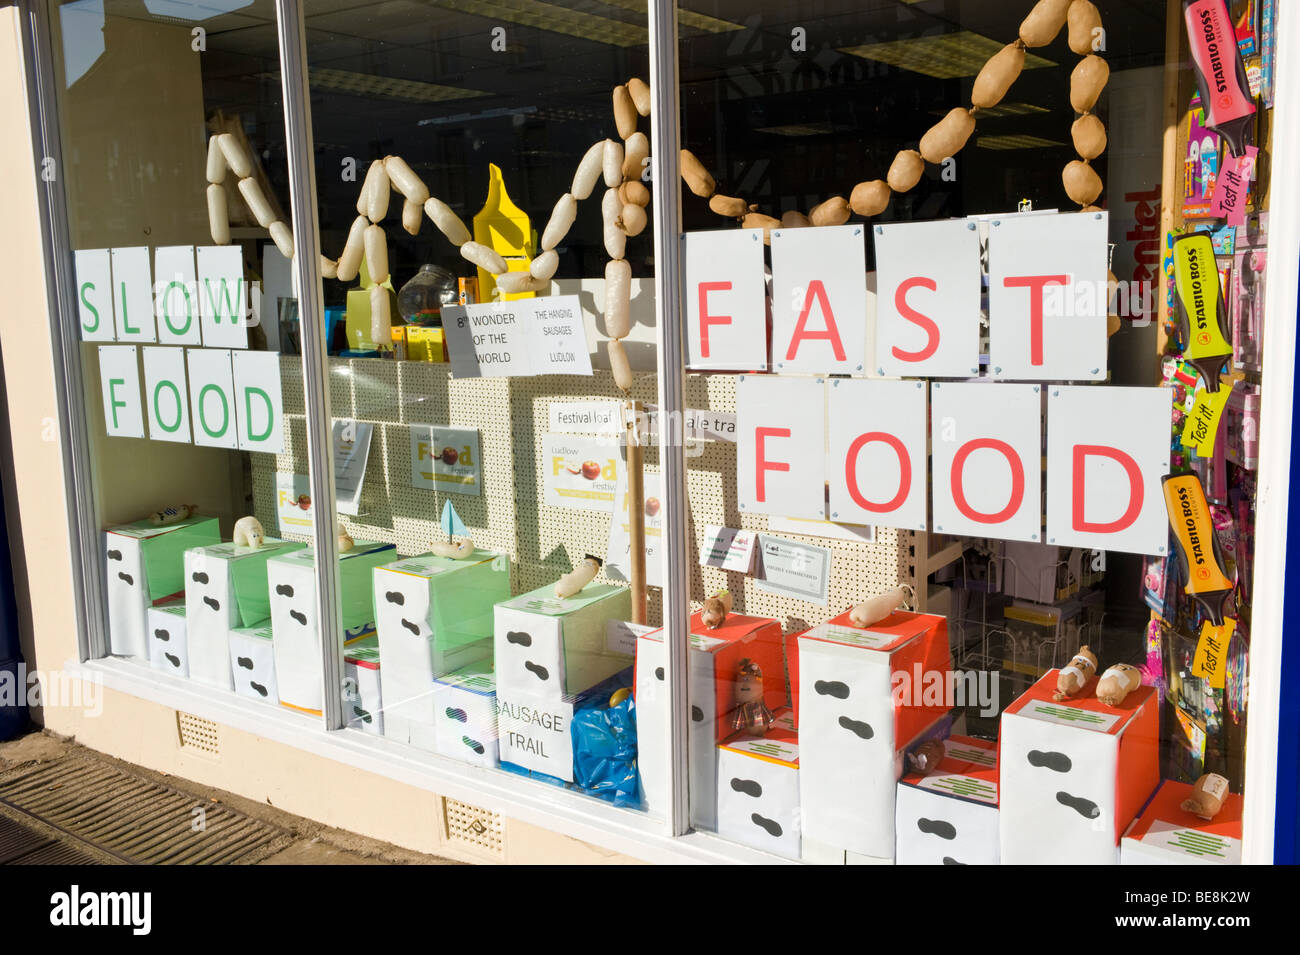 FAST FOOD SLOW FOOD display in window of stationary shop in Ludlow during the annual Food Festival Shropshire England - Stock Image